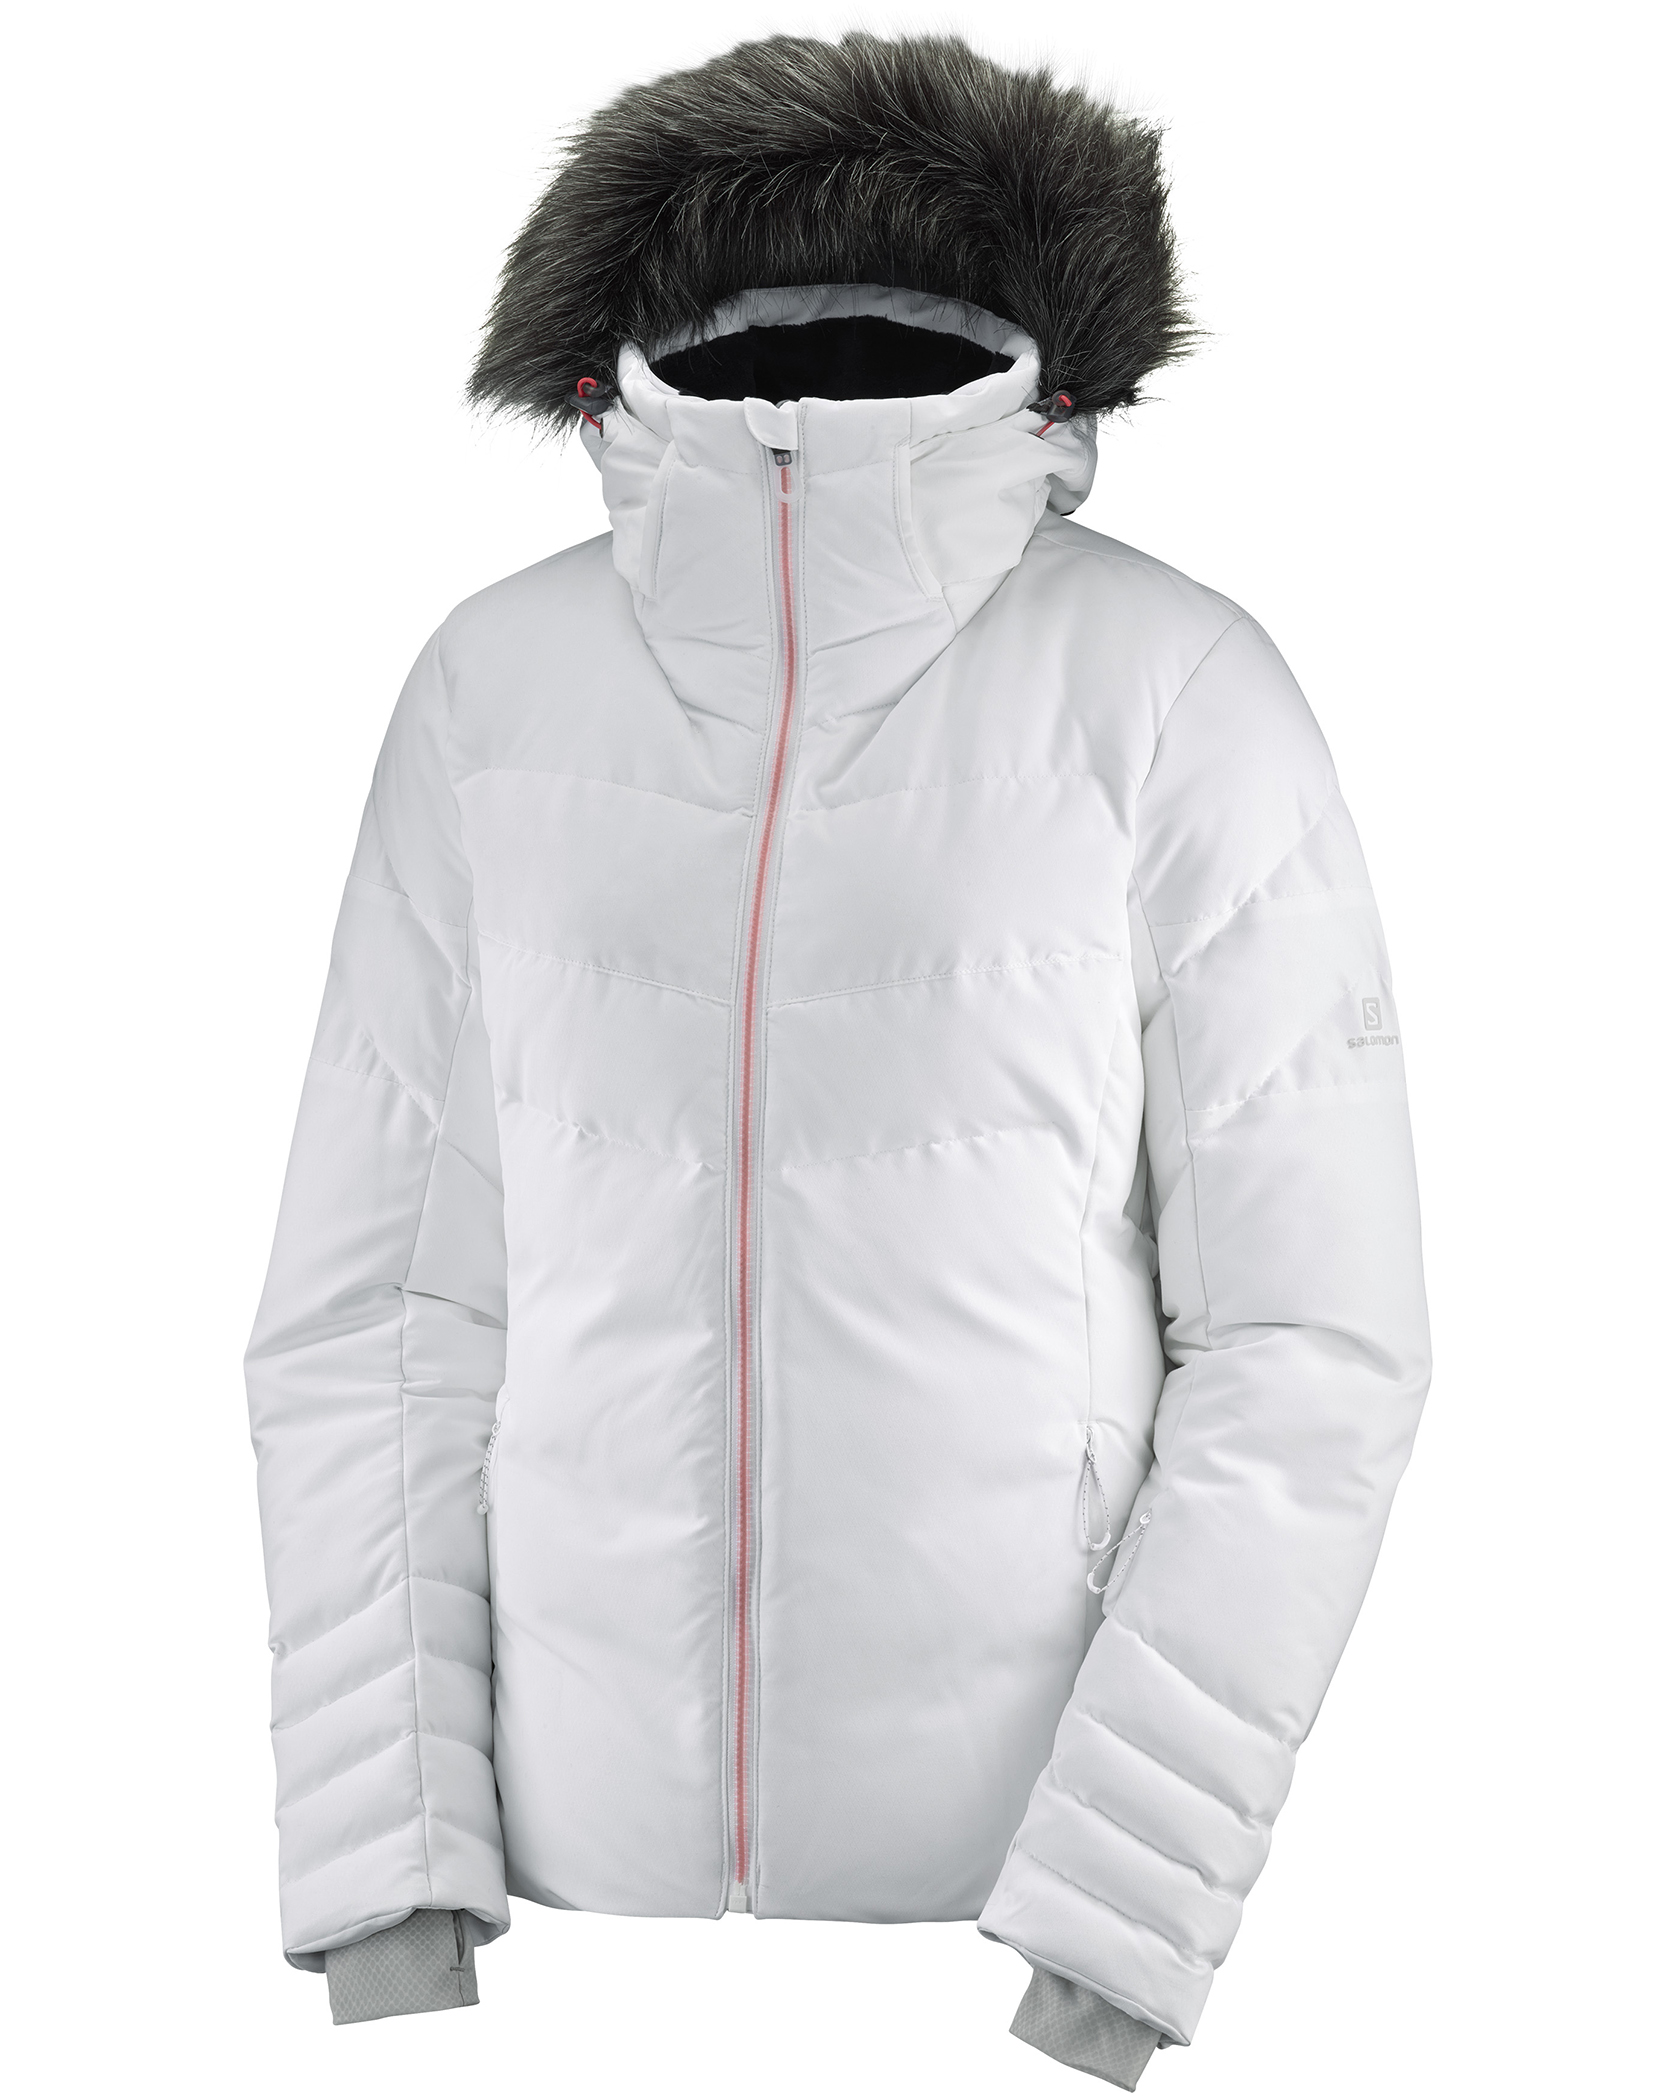 Icetown Jacket W White